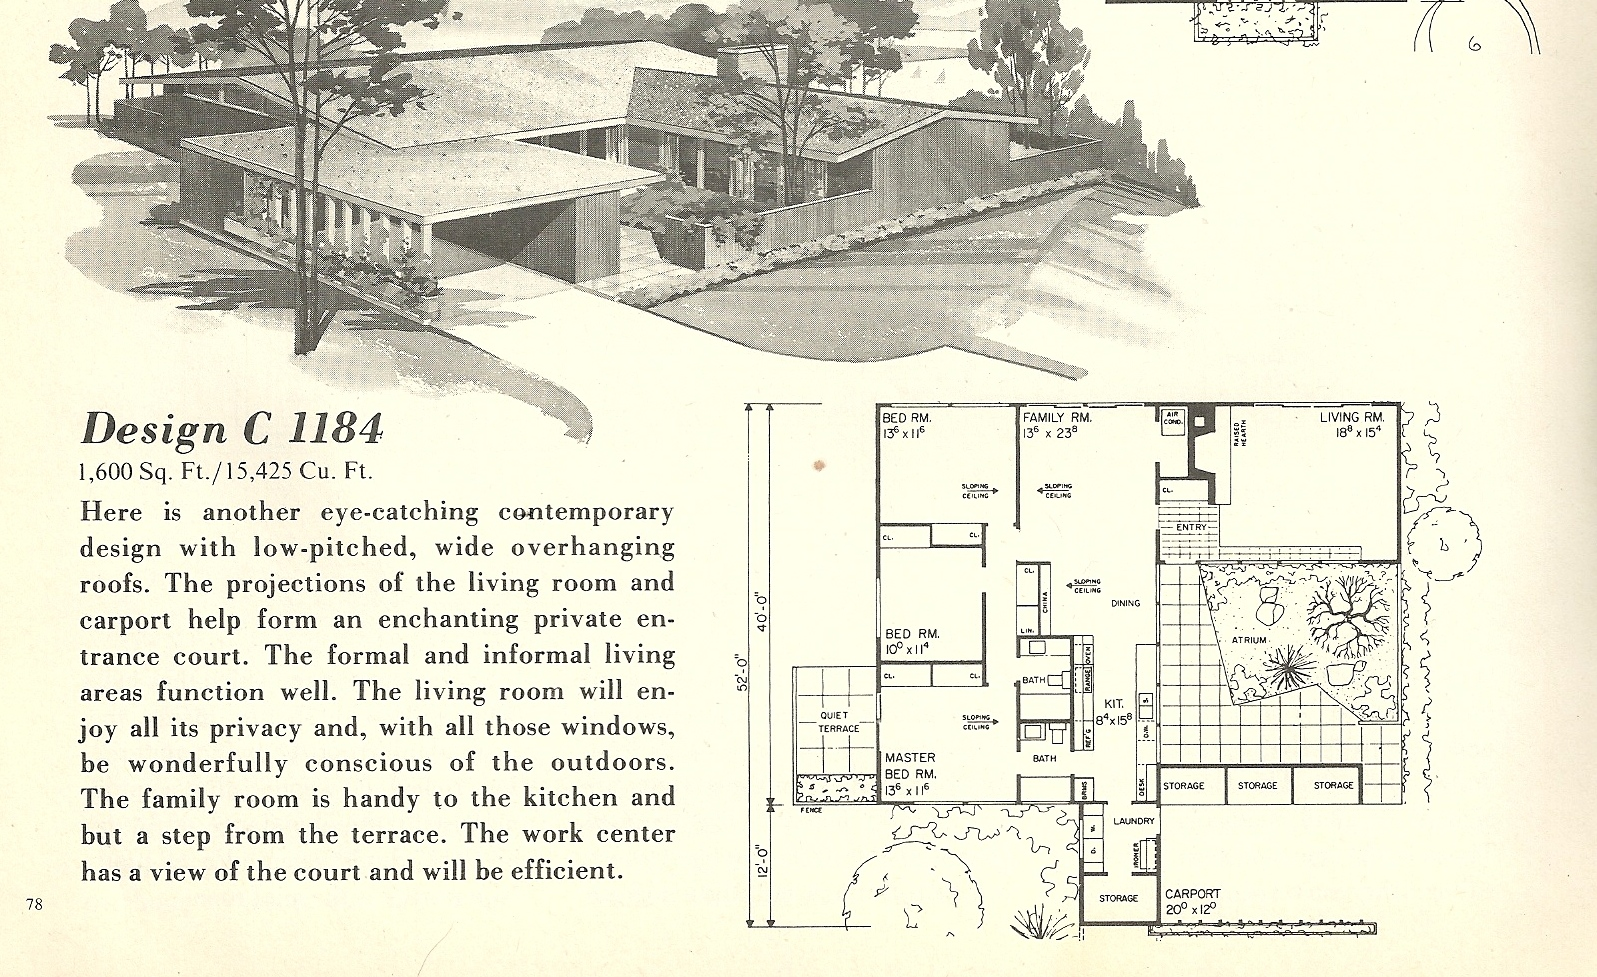 Vintage House Plans 1184 Antique Alter Ego: 1960s ranch style house plans